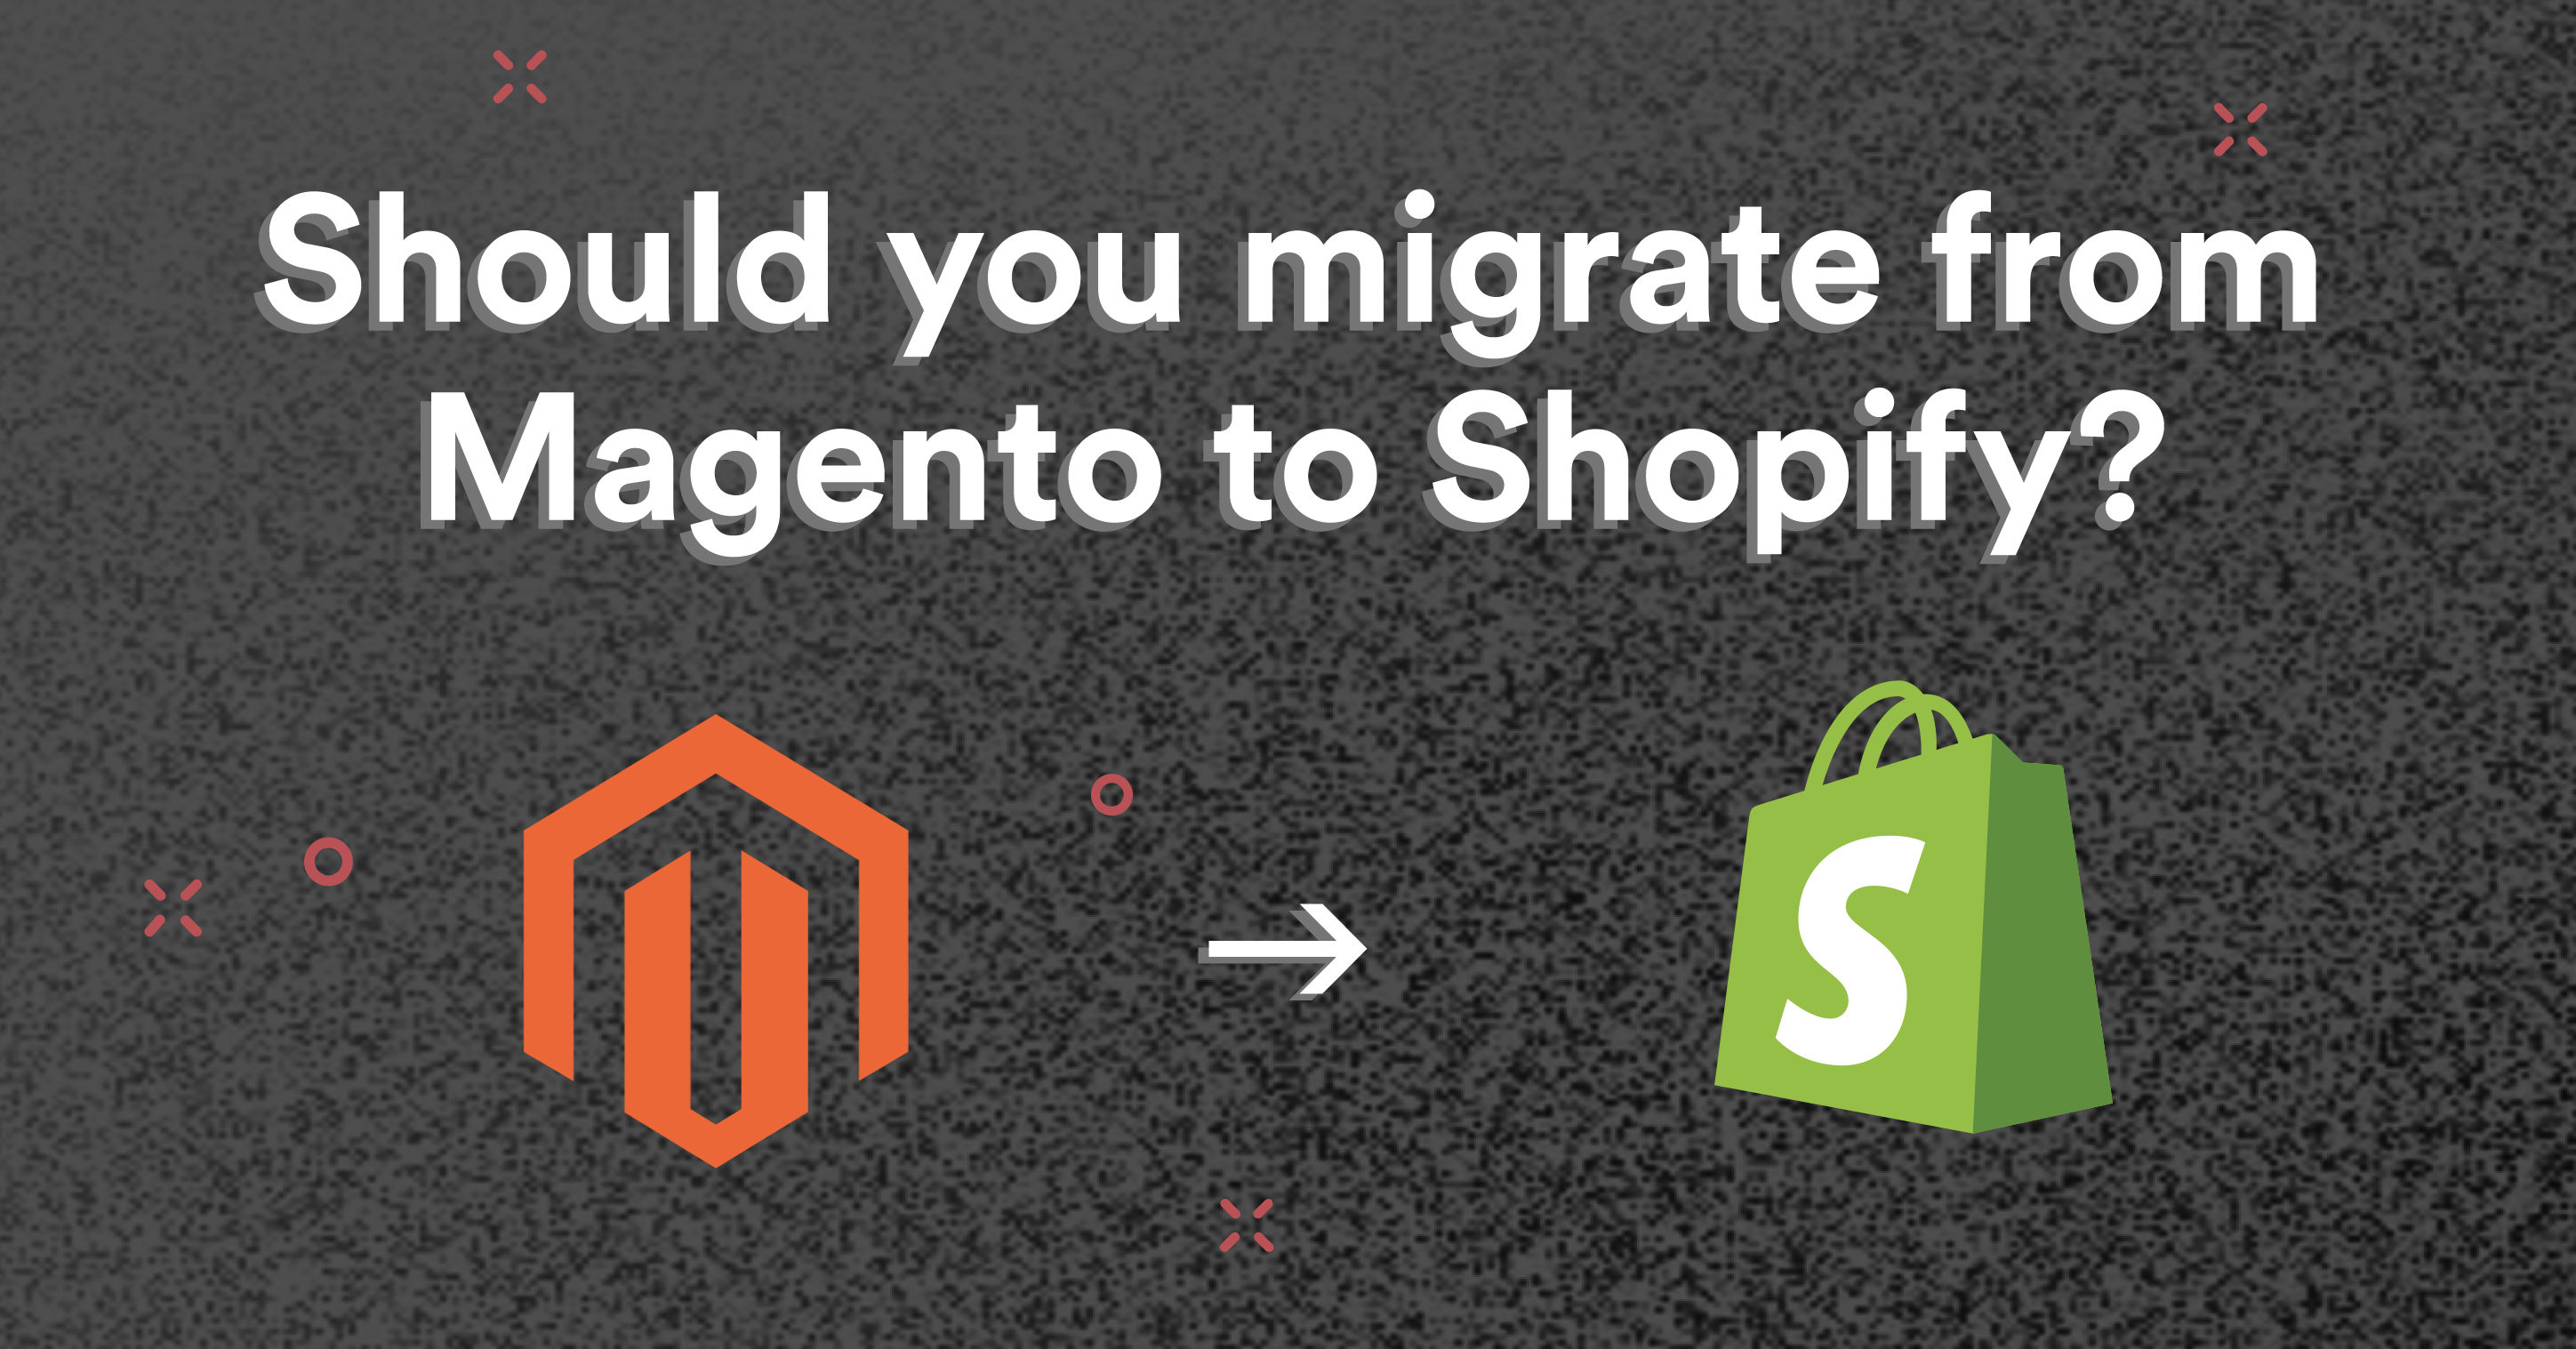 This is an image of whether or not you should migrate from Magento to Shopify.